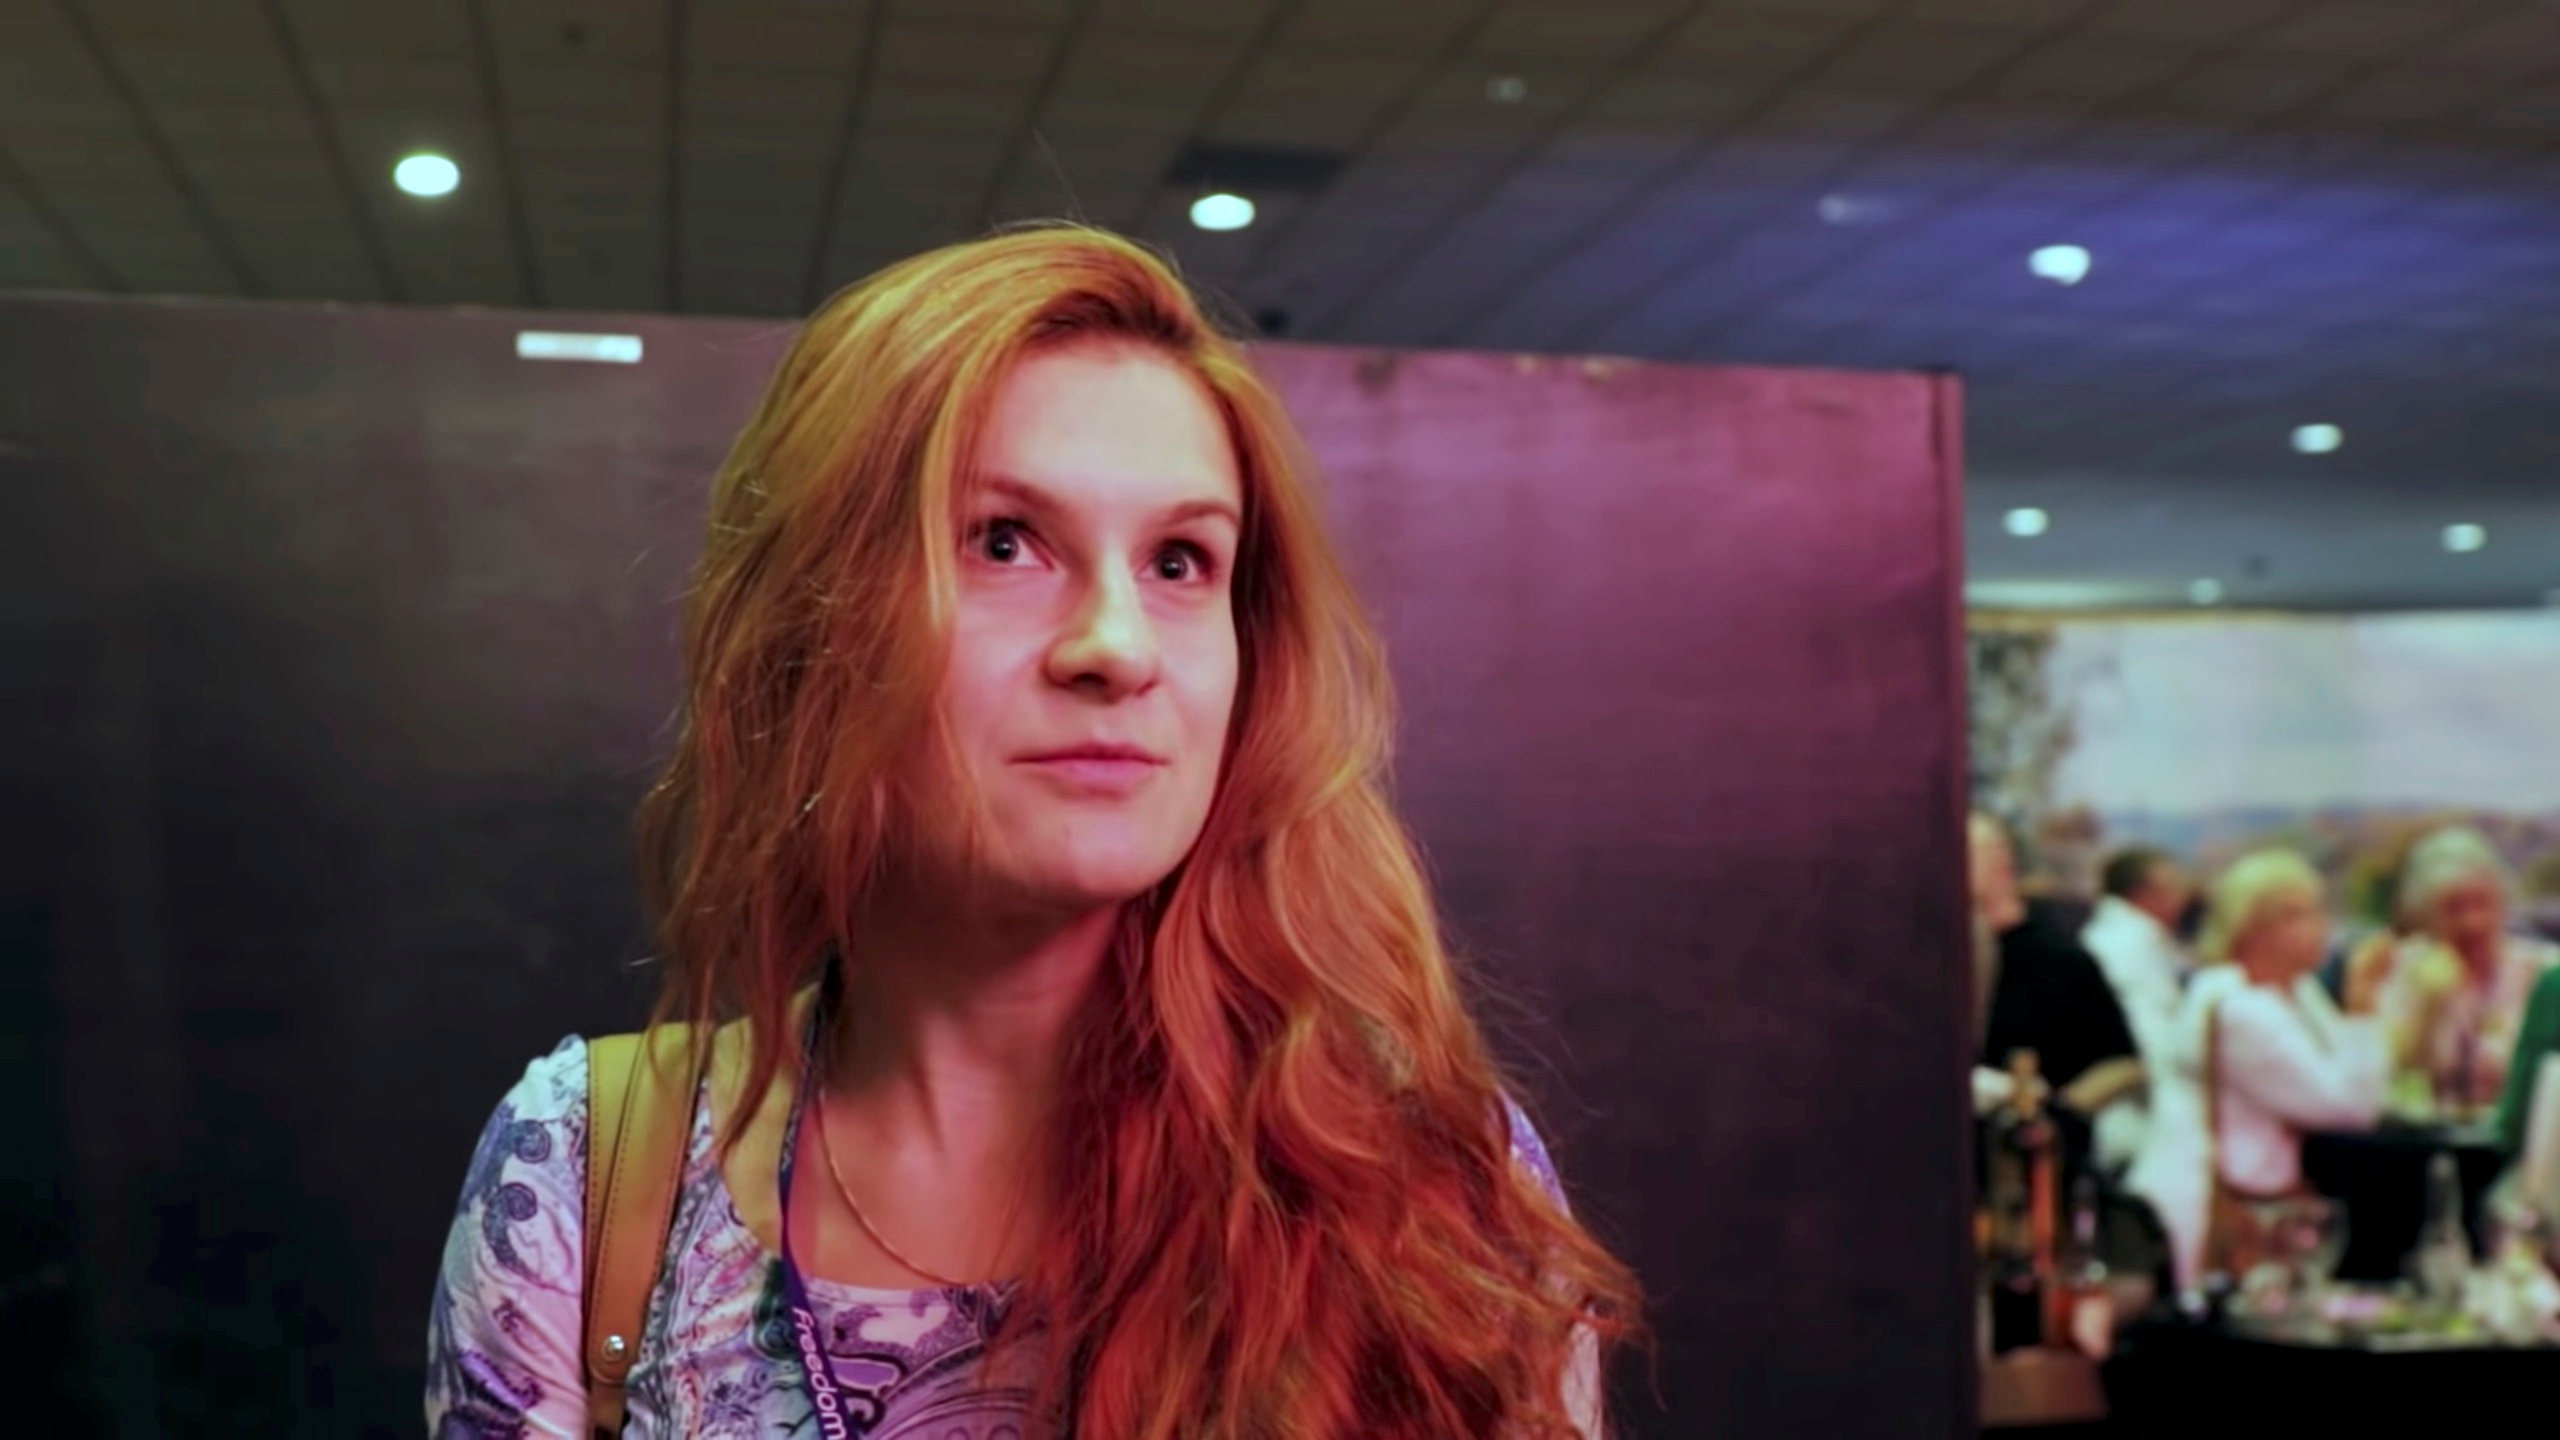 FILE PHOTO: Accused Russian agent Maria Butina speaks to camera at 2015 FreedomFest conference in Las Vegas, Nevada, U.S., July 11, 2015 in this still image taken from a social media video obtained July 19, 2018. FreedomFest. Photo:Reuters